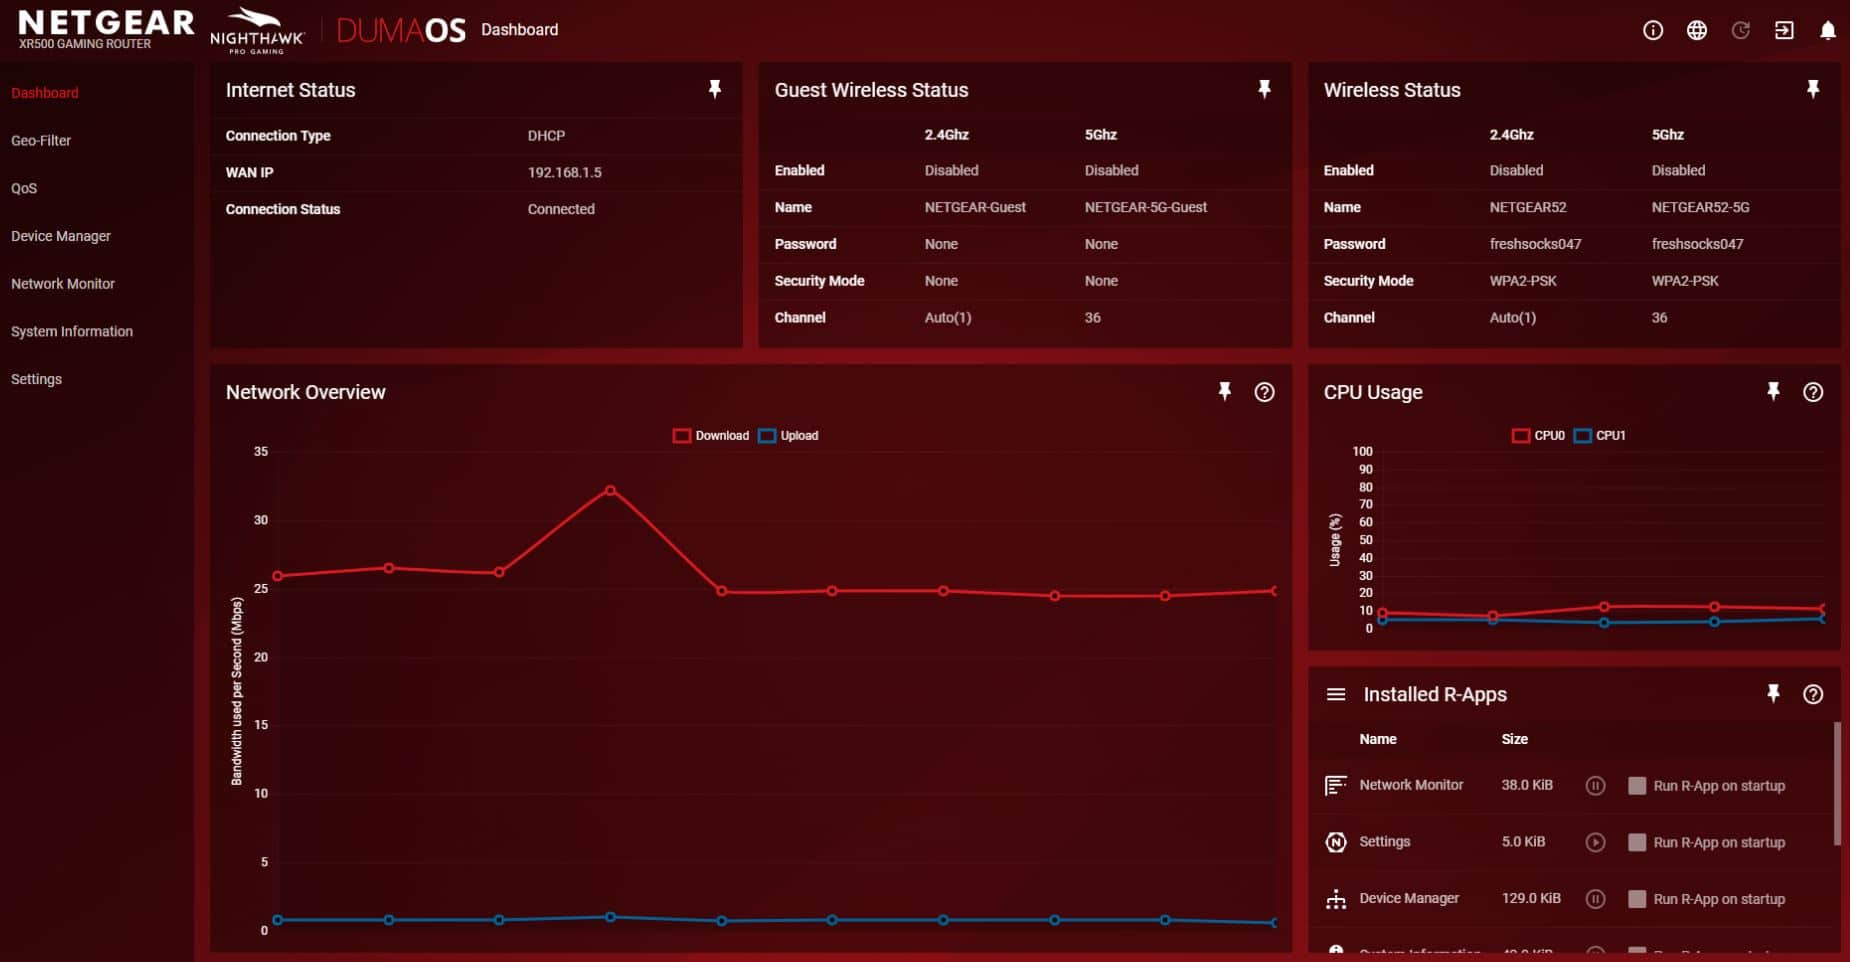 Duma OS Gaming Dashboard